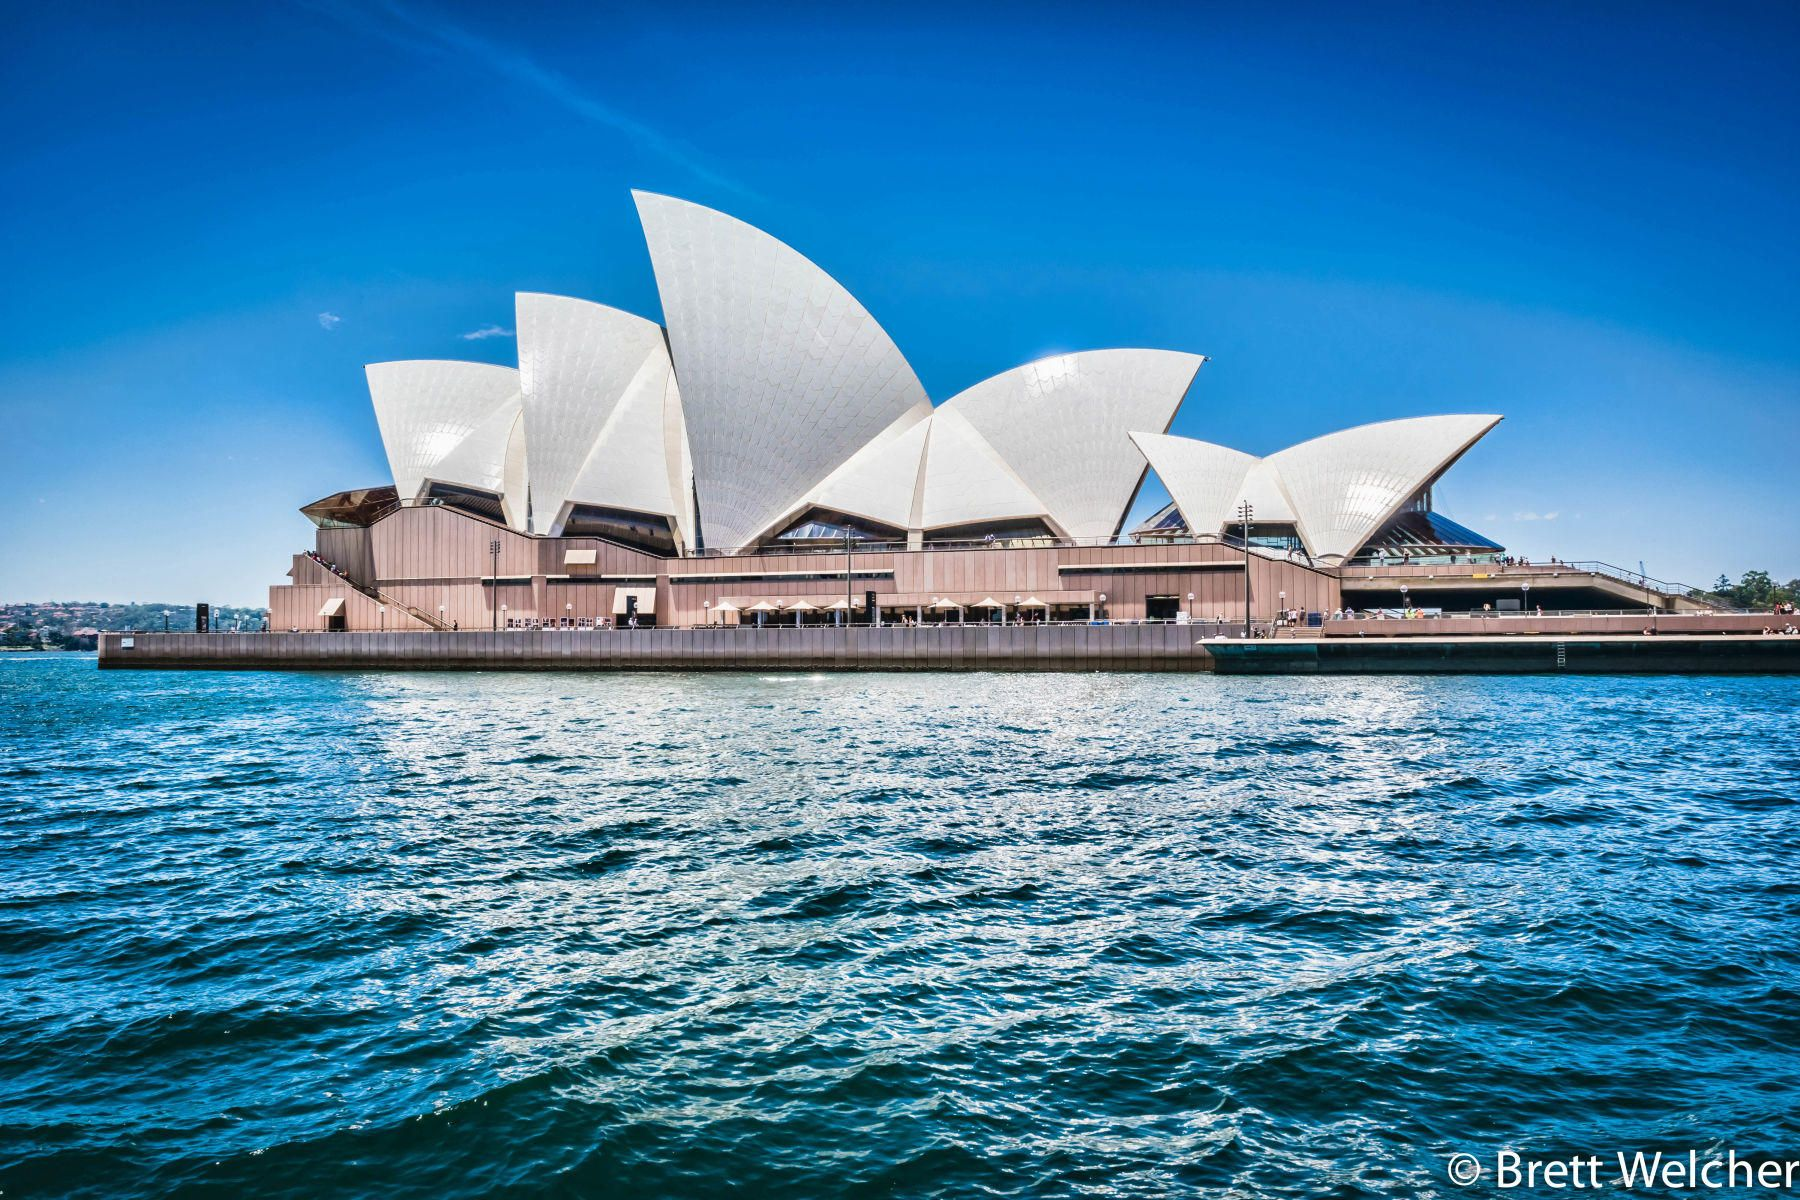 No other building on earth looks like the Sydney Opera House. The building is in fact a complex of theatres and halls linked beneath its famous shells.